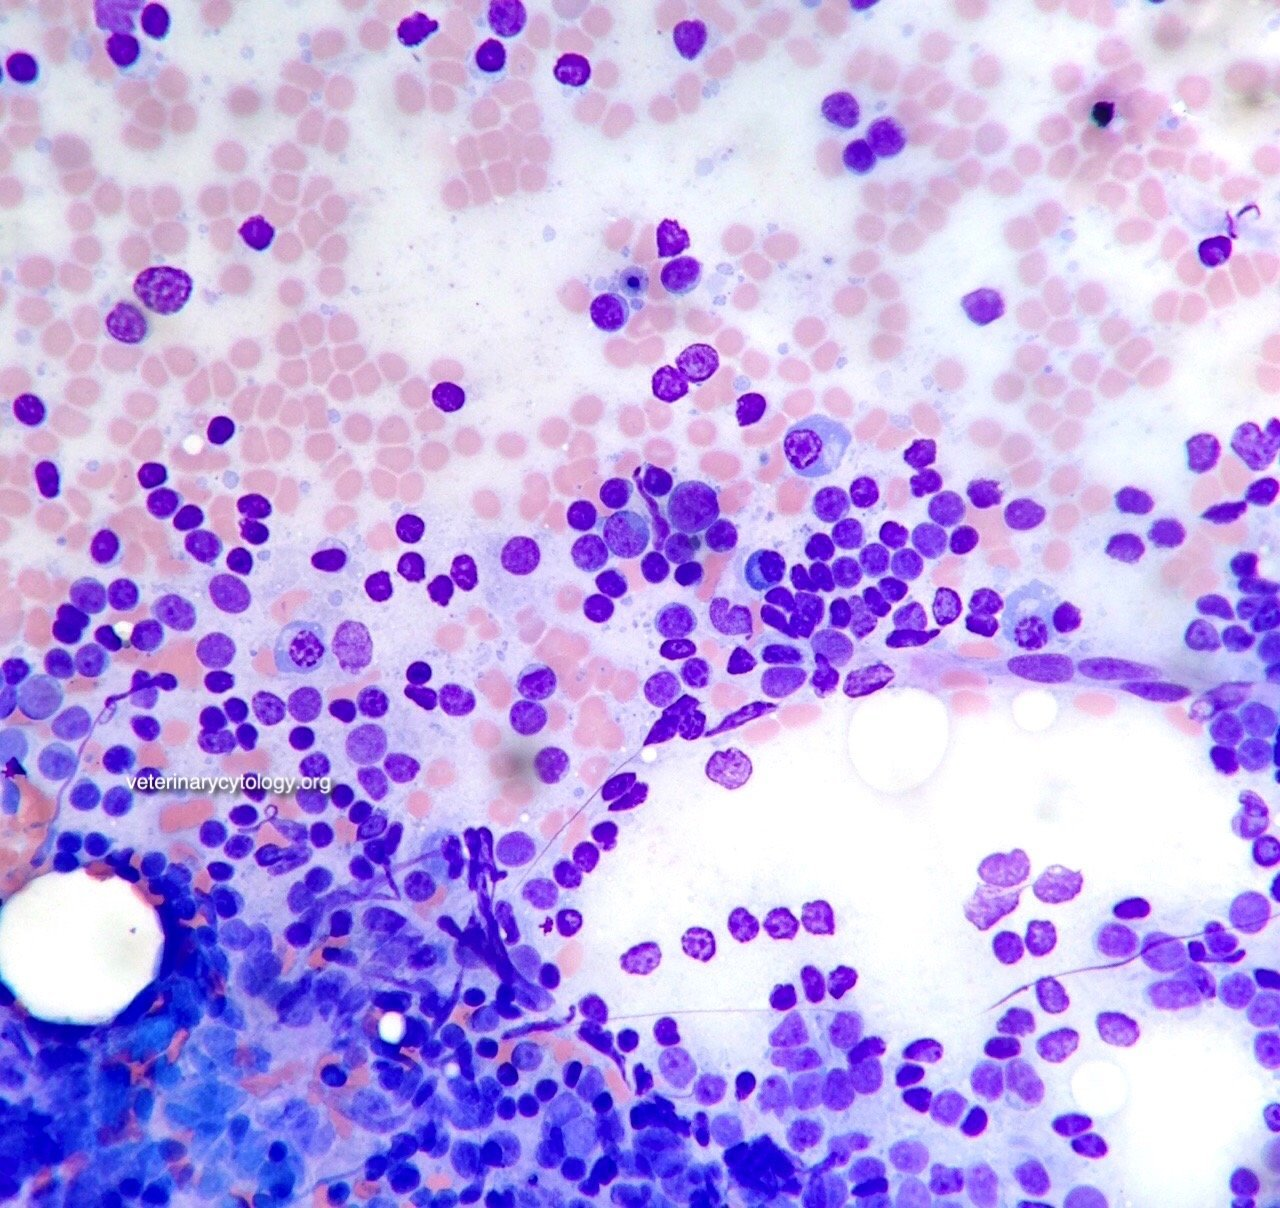 Reactive lymphoid hyperplasia, spleen, dog.